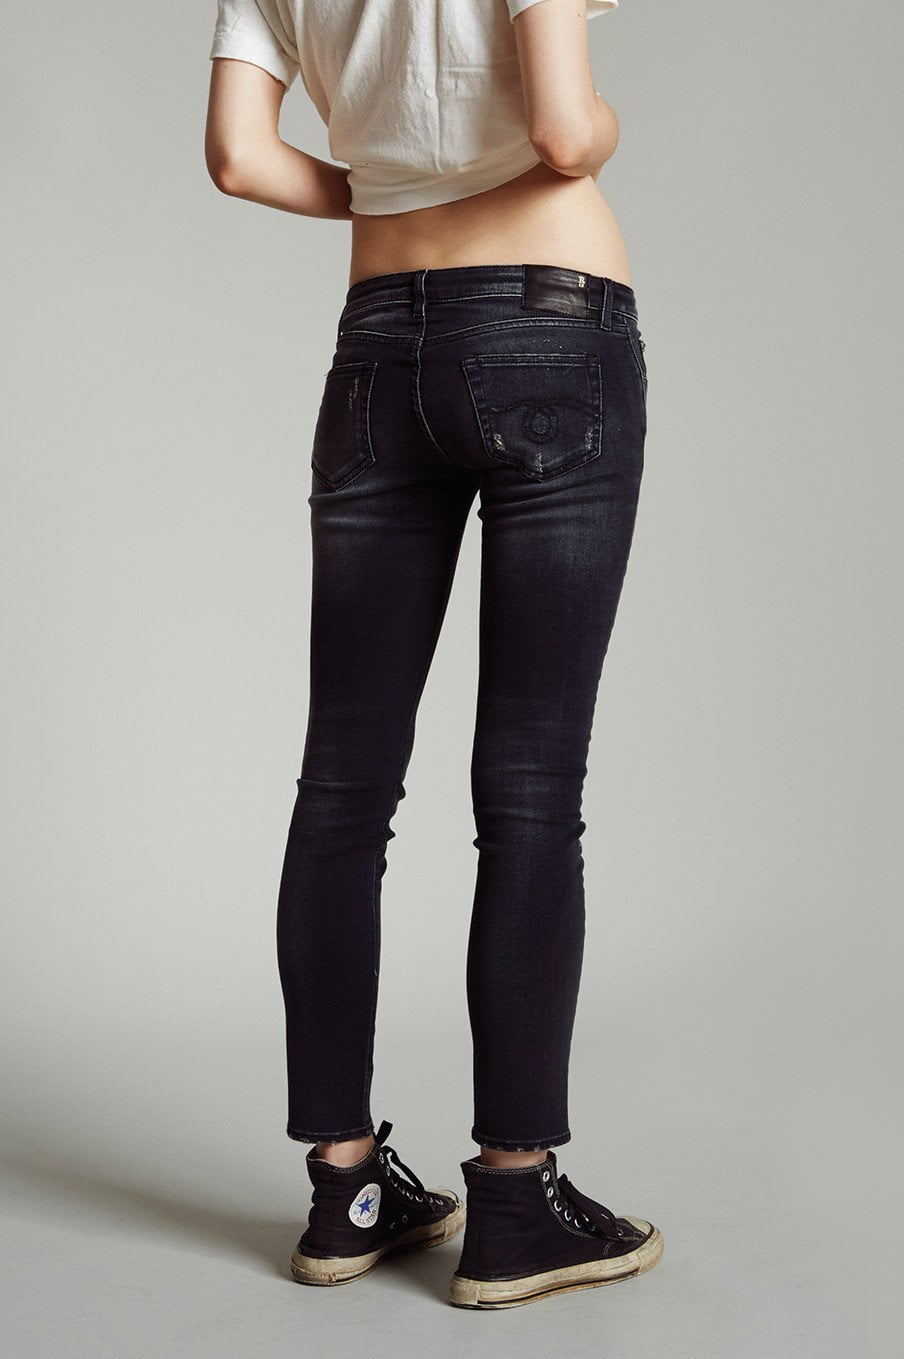 Kate skinny orion black